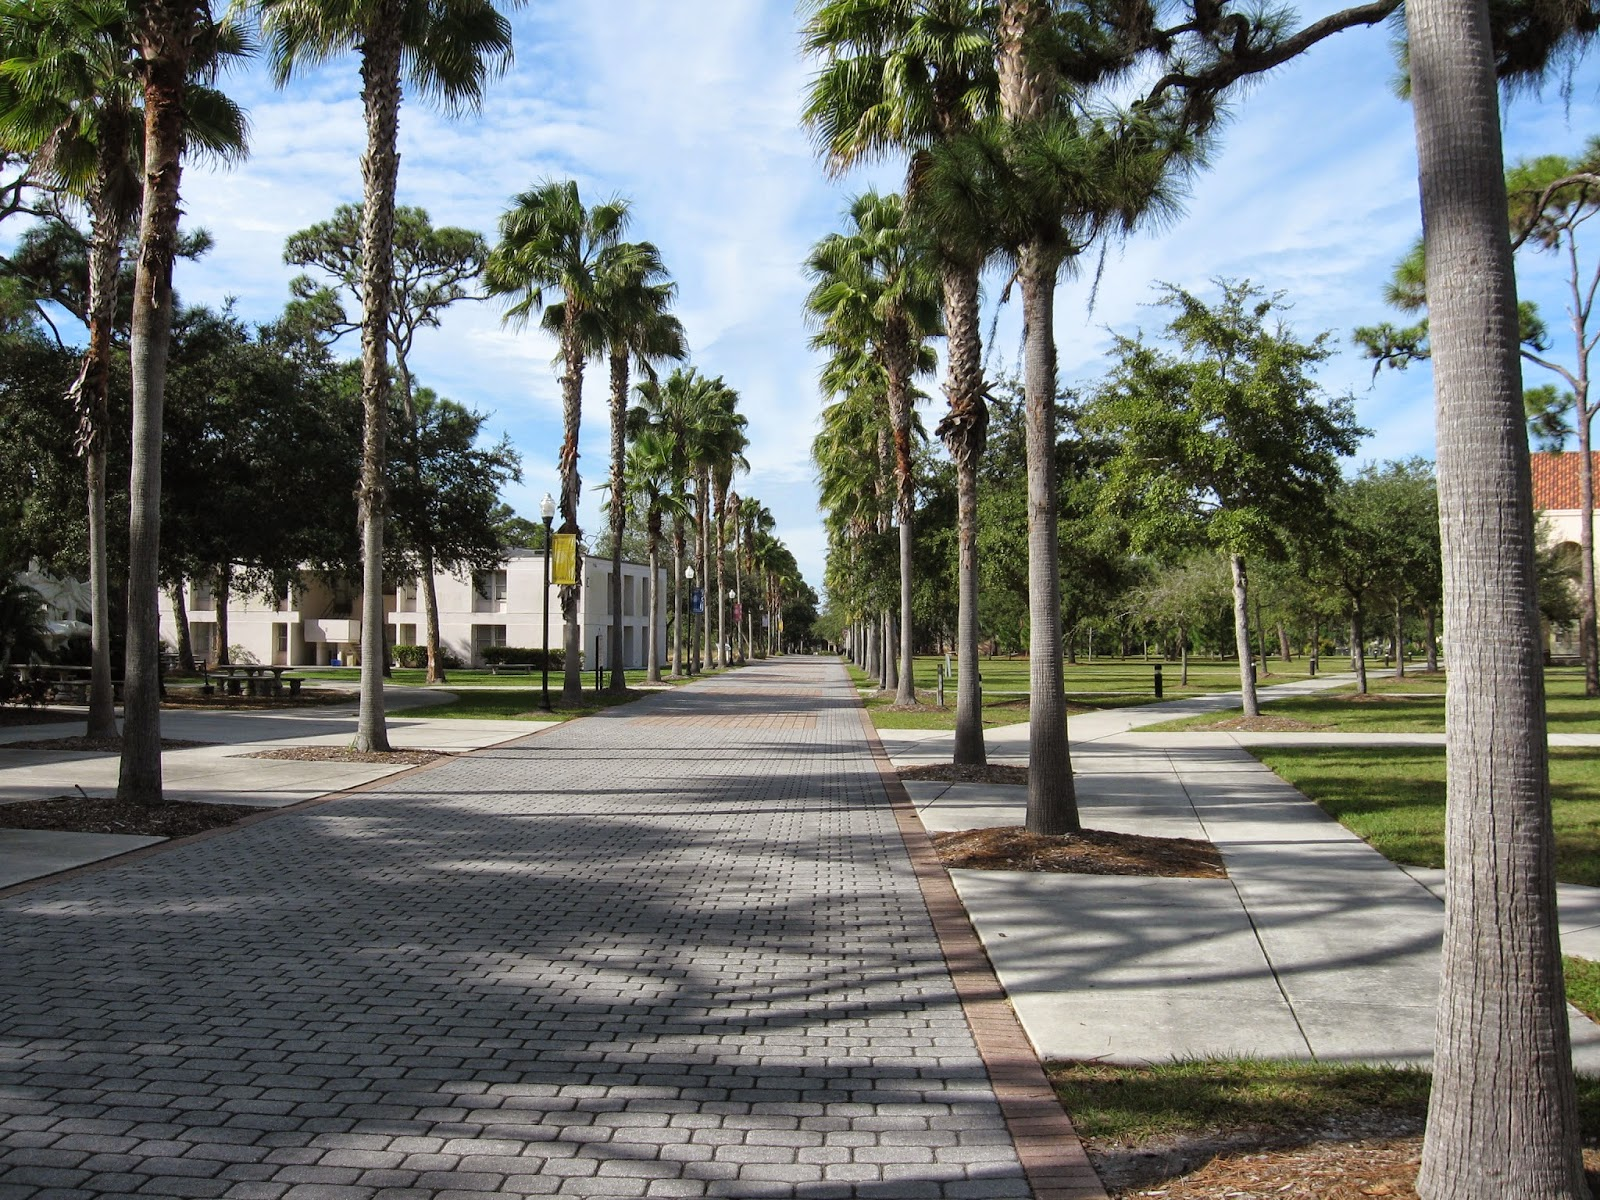 NEW COLLEGE OF FLORIDA: What should I keep in mind when defending my undergraduate thesis?